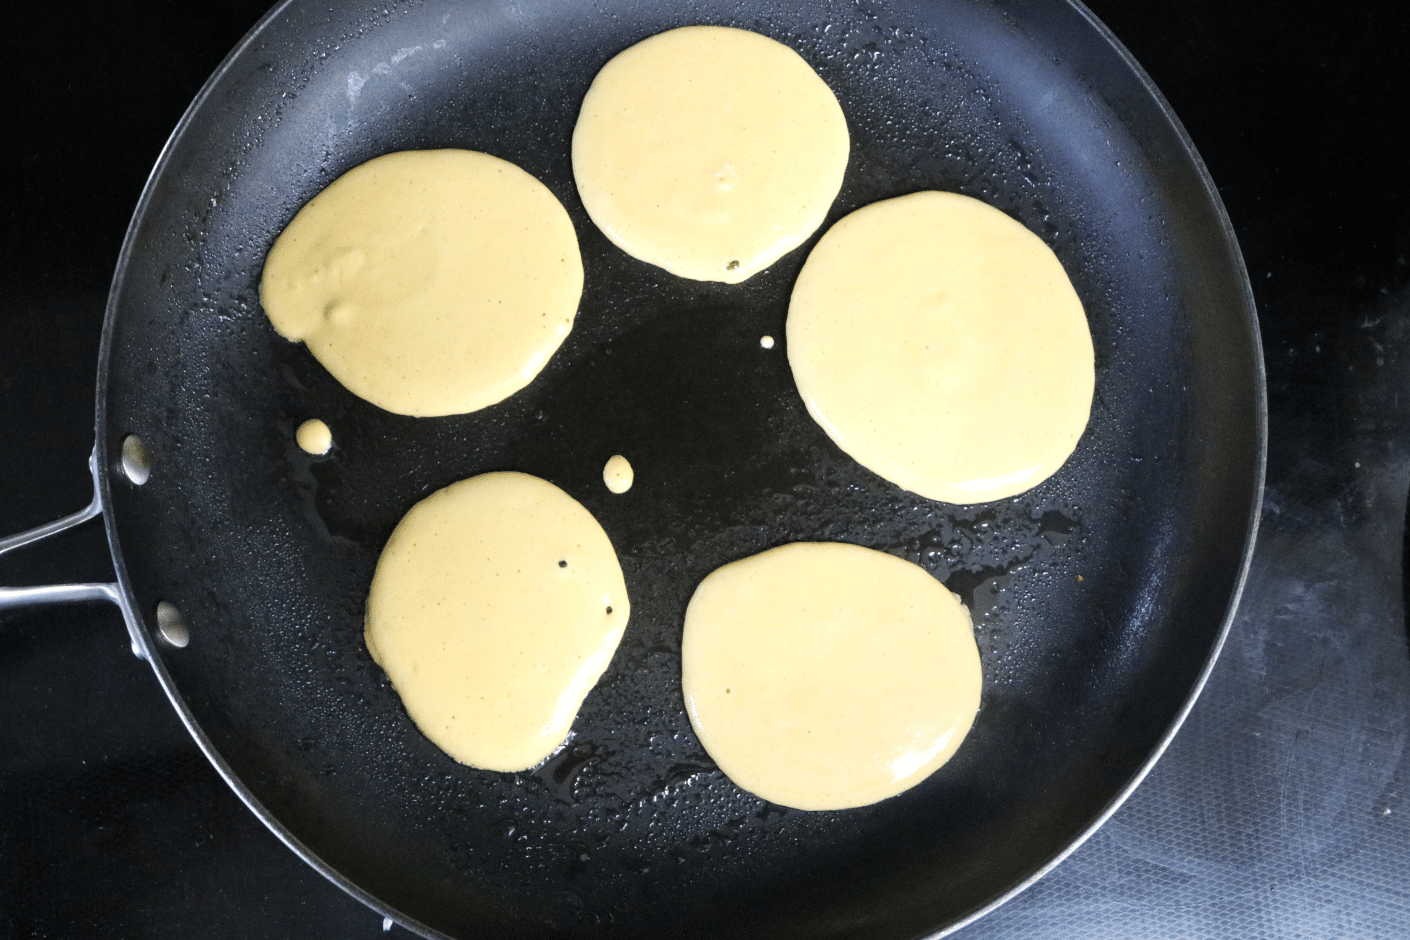 Five protein pancakes in a black pan